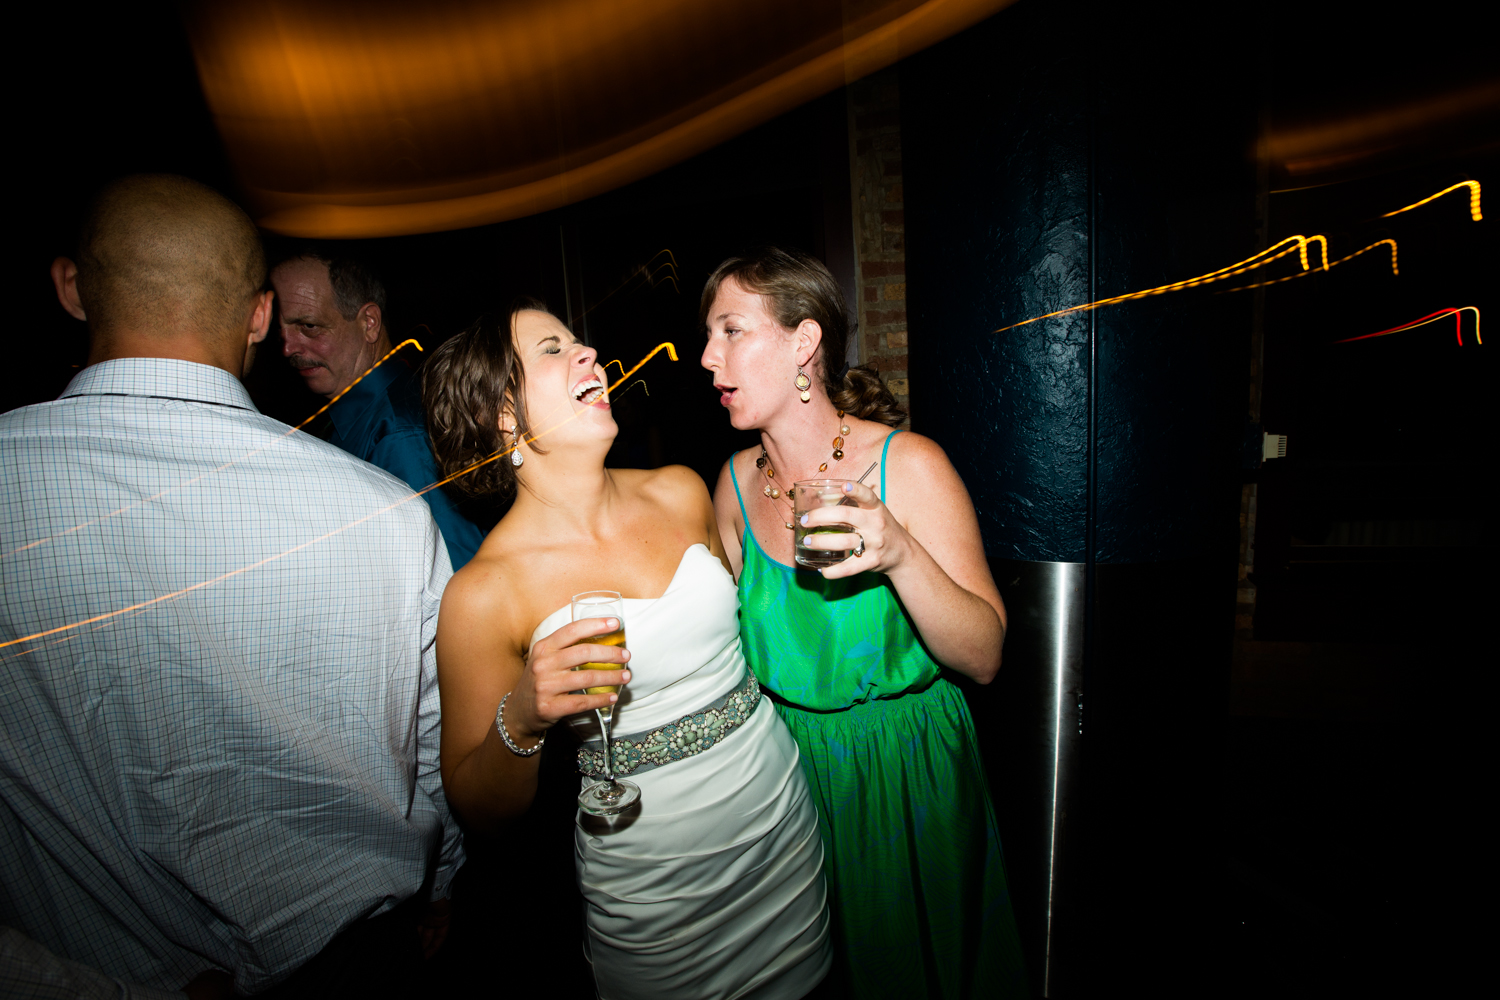 fultons_on_the_river_wedding_chicago_photographer-104.jpg